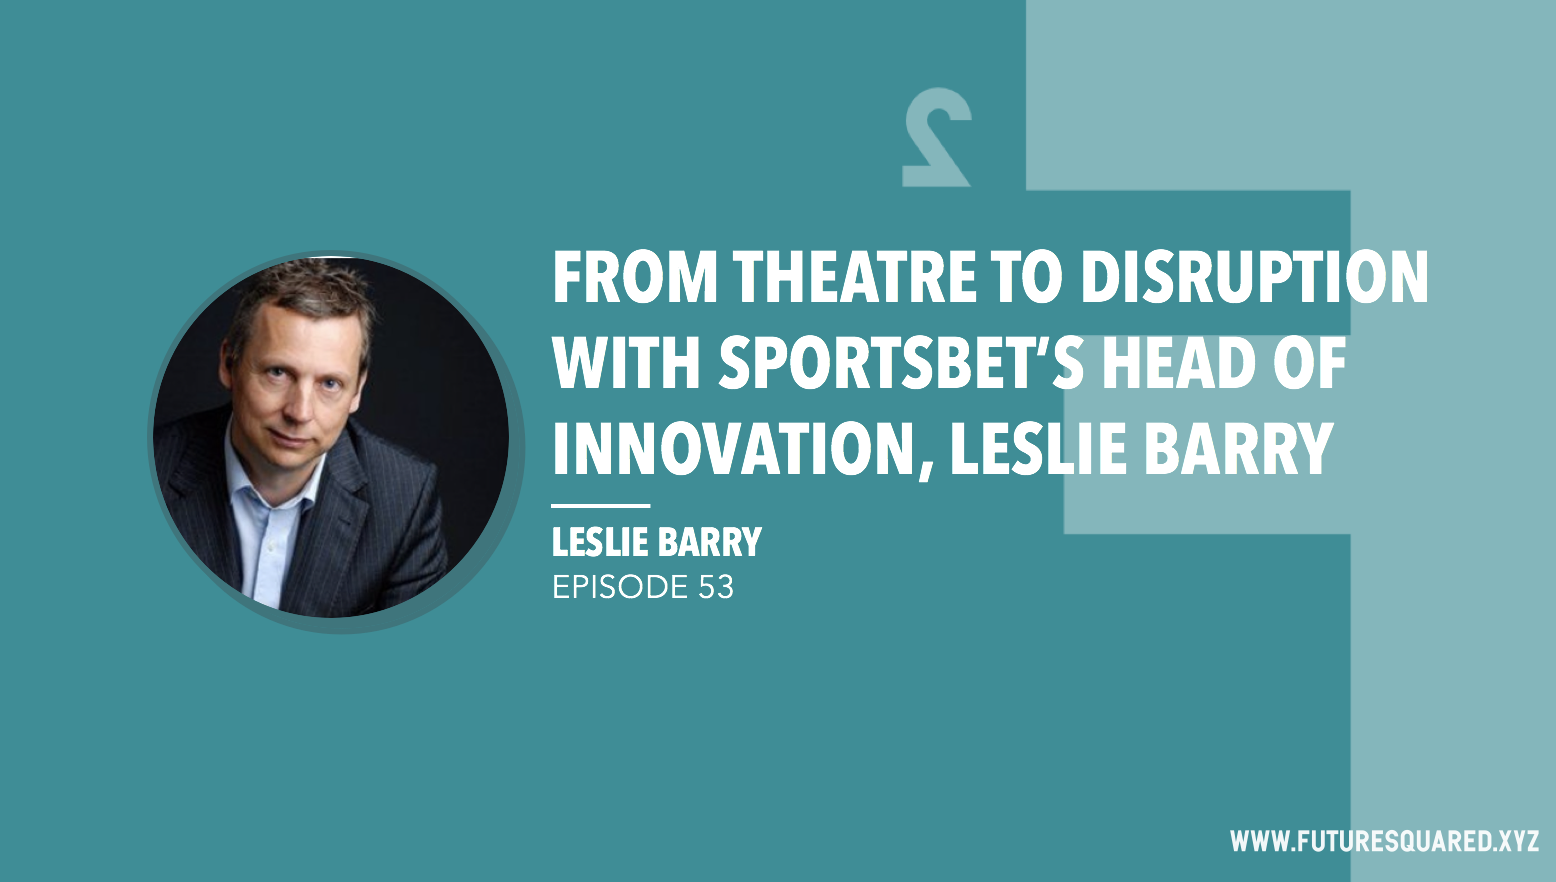 Future Squared Episode #53: From Theatre to Disruption with Sportbet's Head of Innovatoin, Leslie Barry